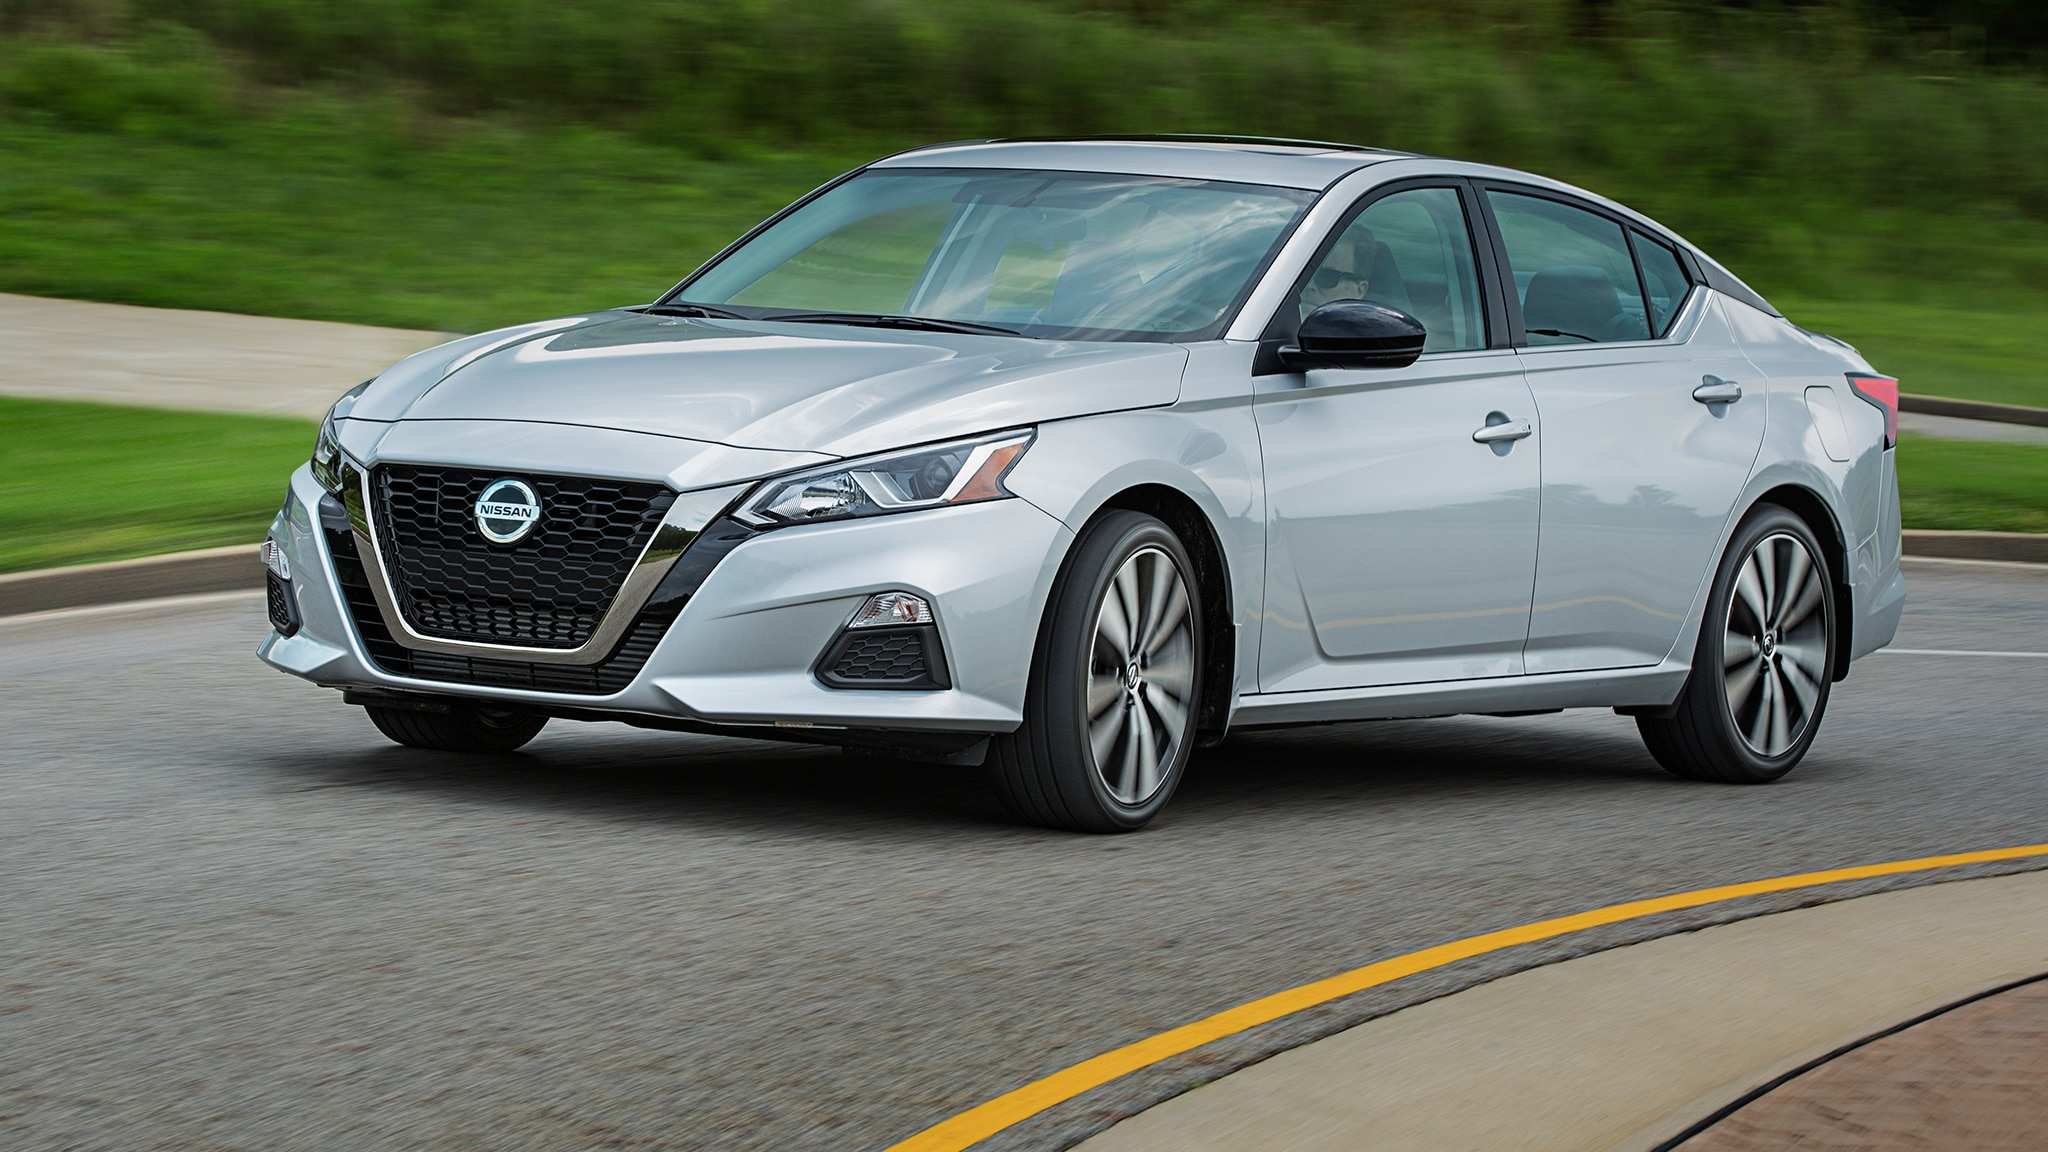 19 All New The 2019 Nissan Altima Horsepower First Drive Model for The 2019 Nissan Altima Horsepower First Drive